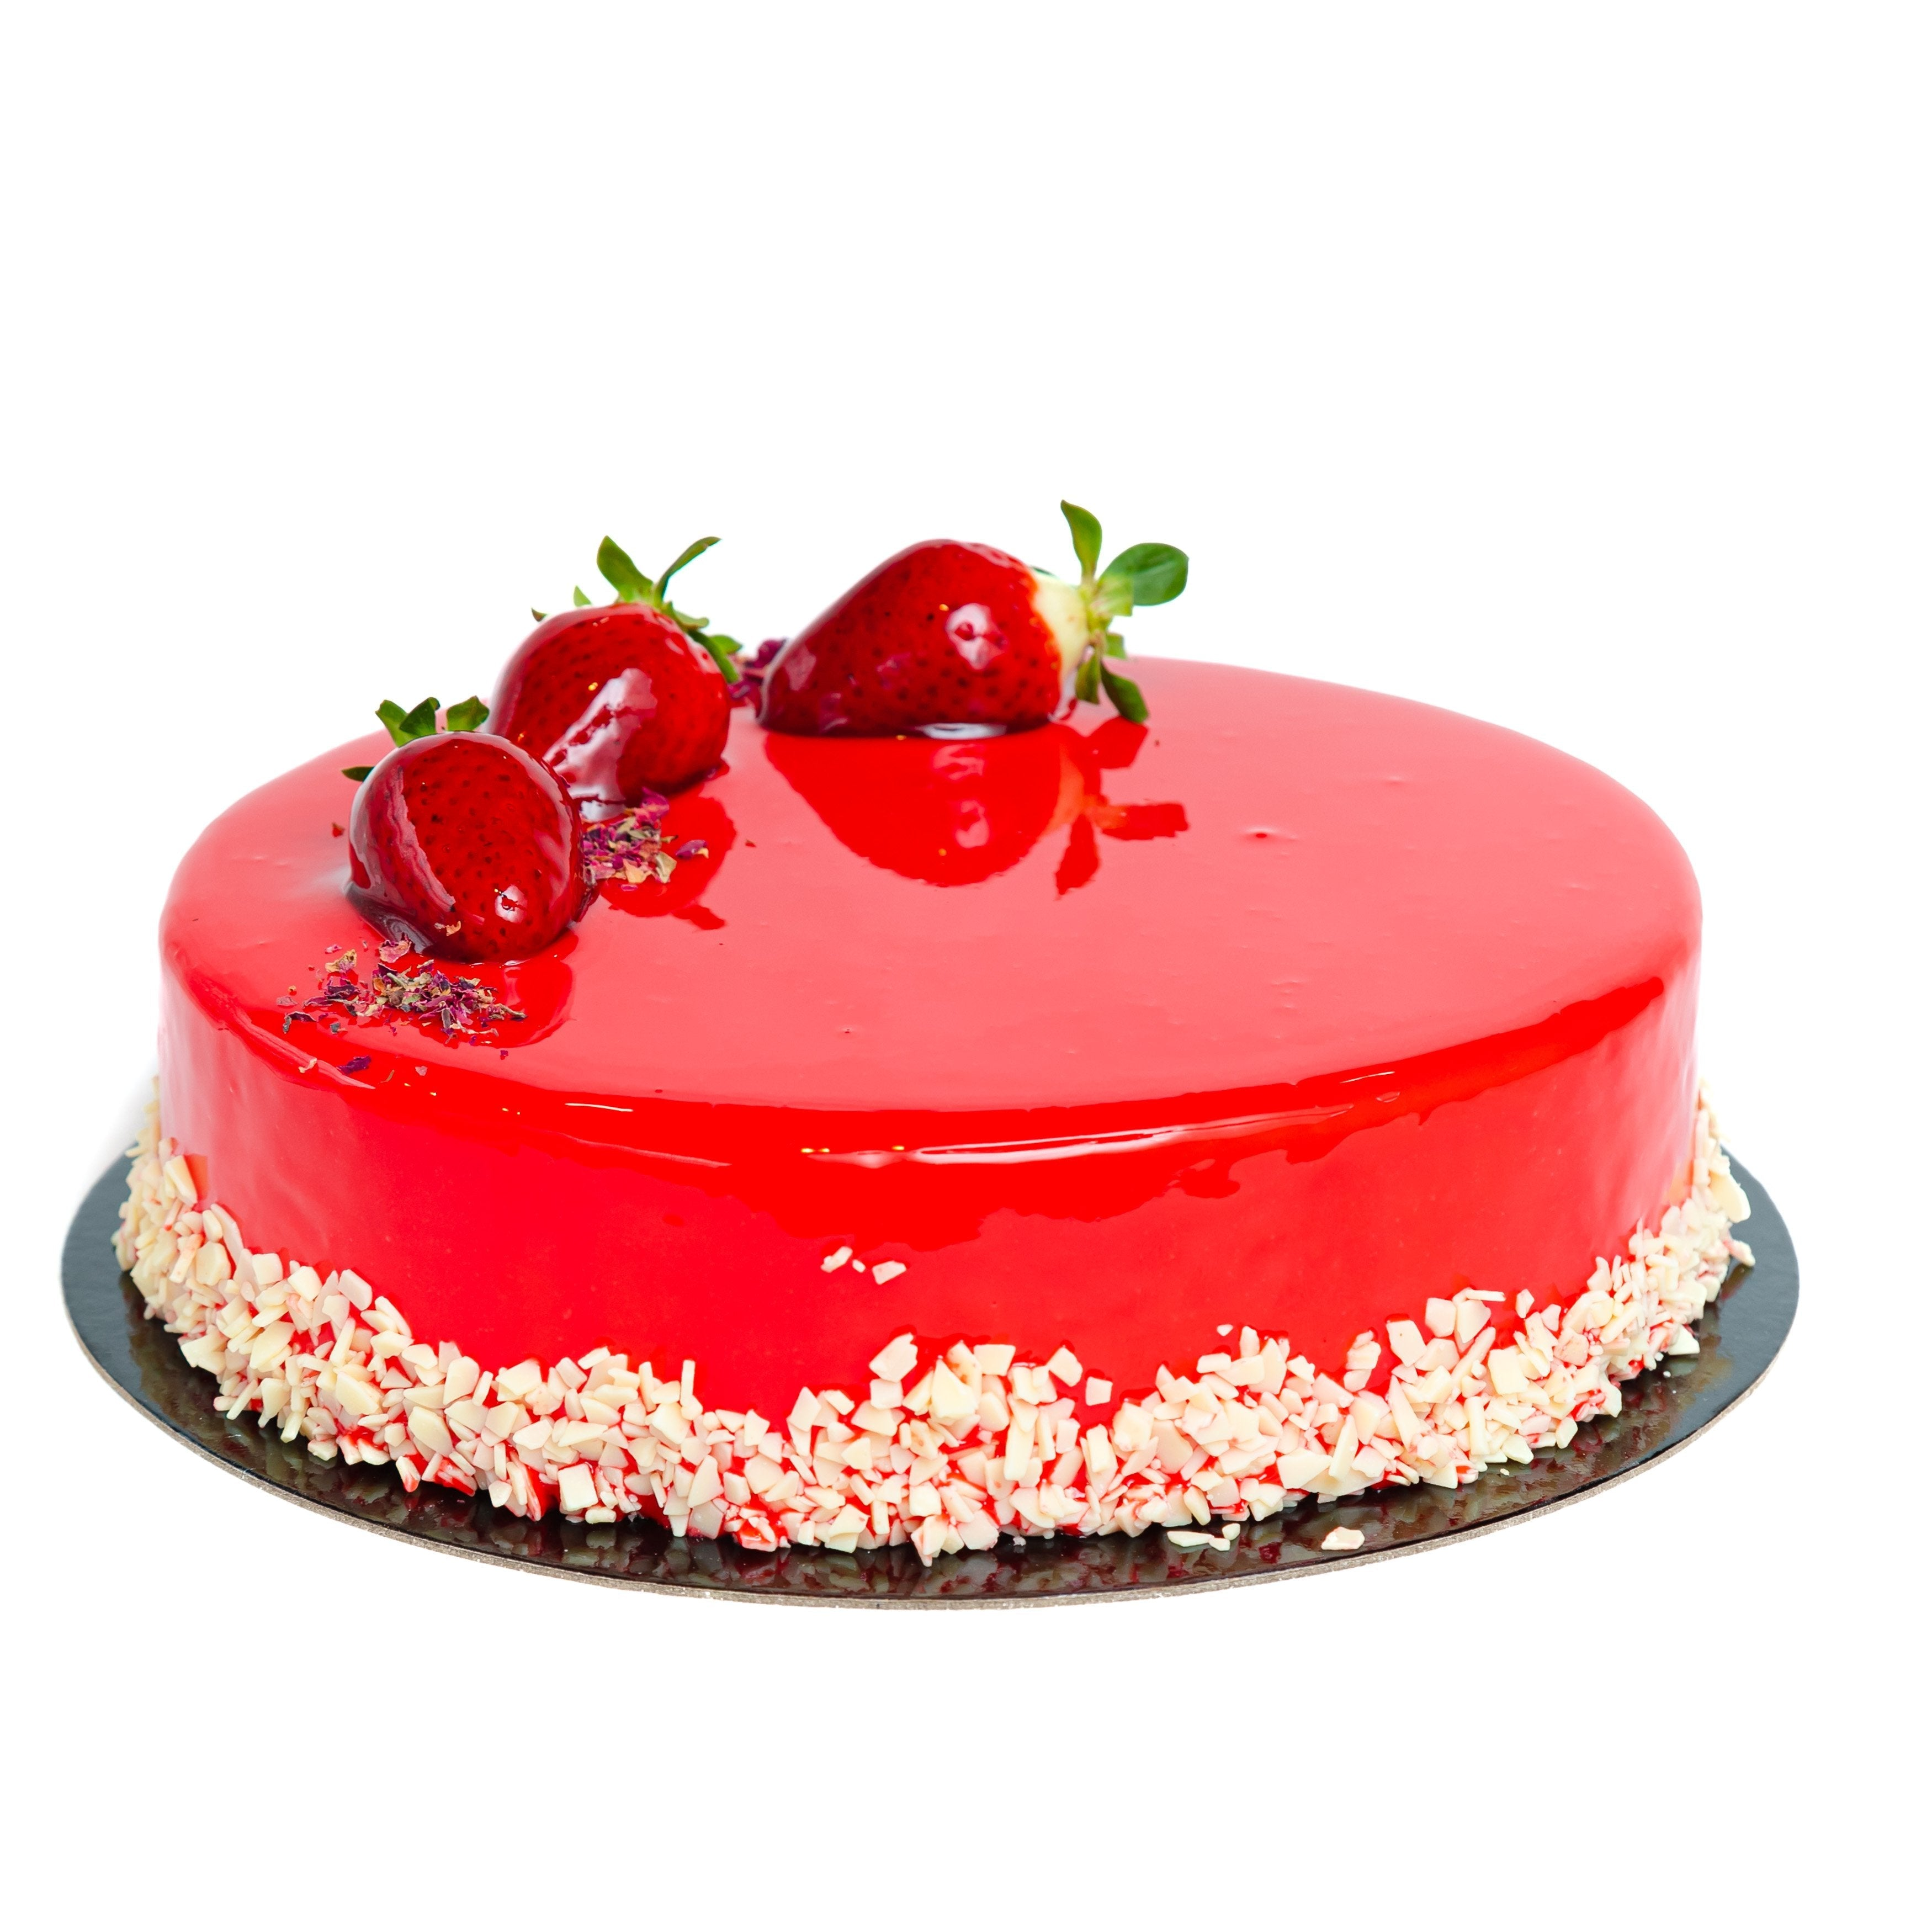 Strawberry Semifreddo Cake